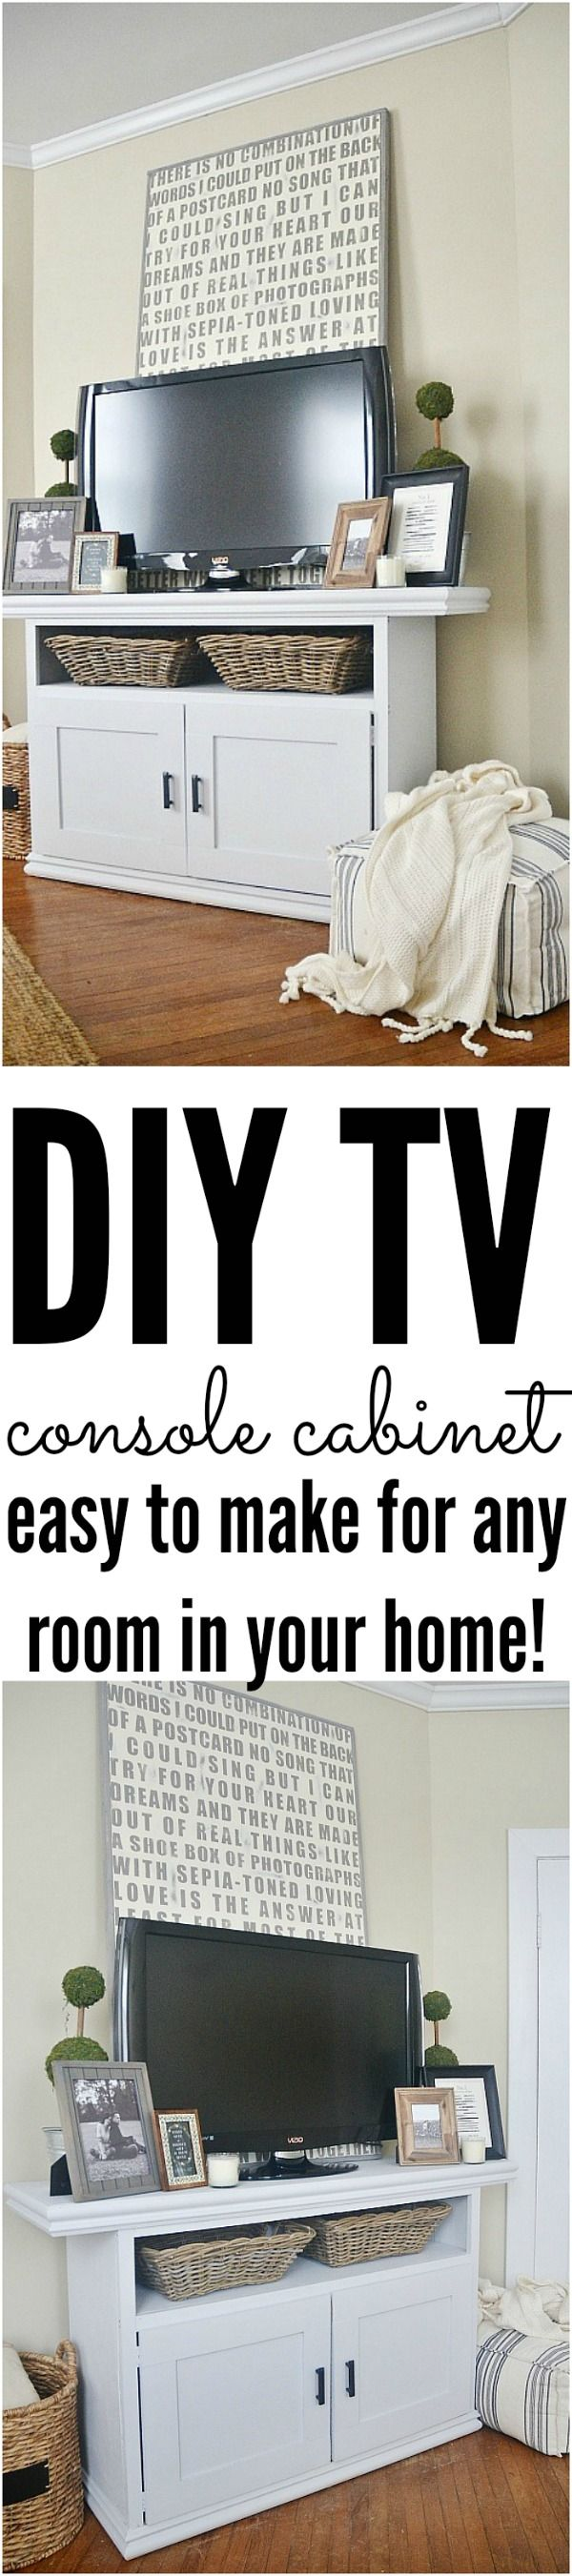 DIY tv stand - so easy to make!!